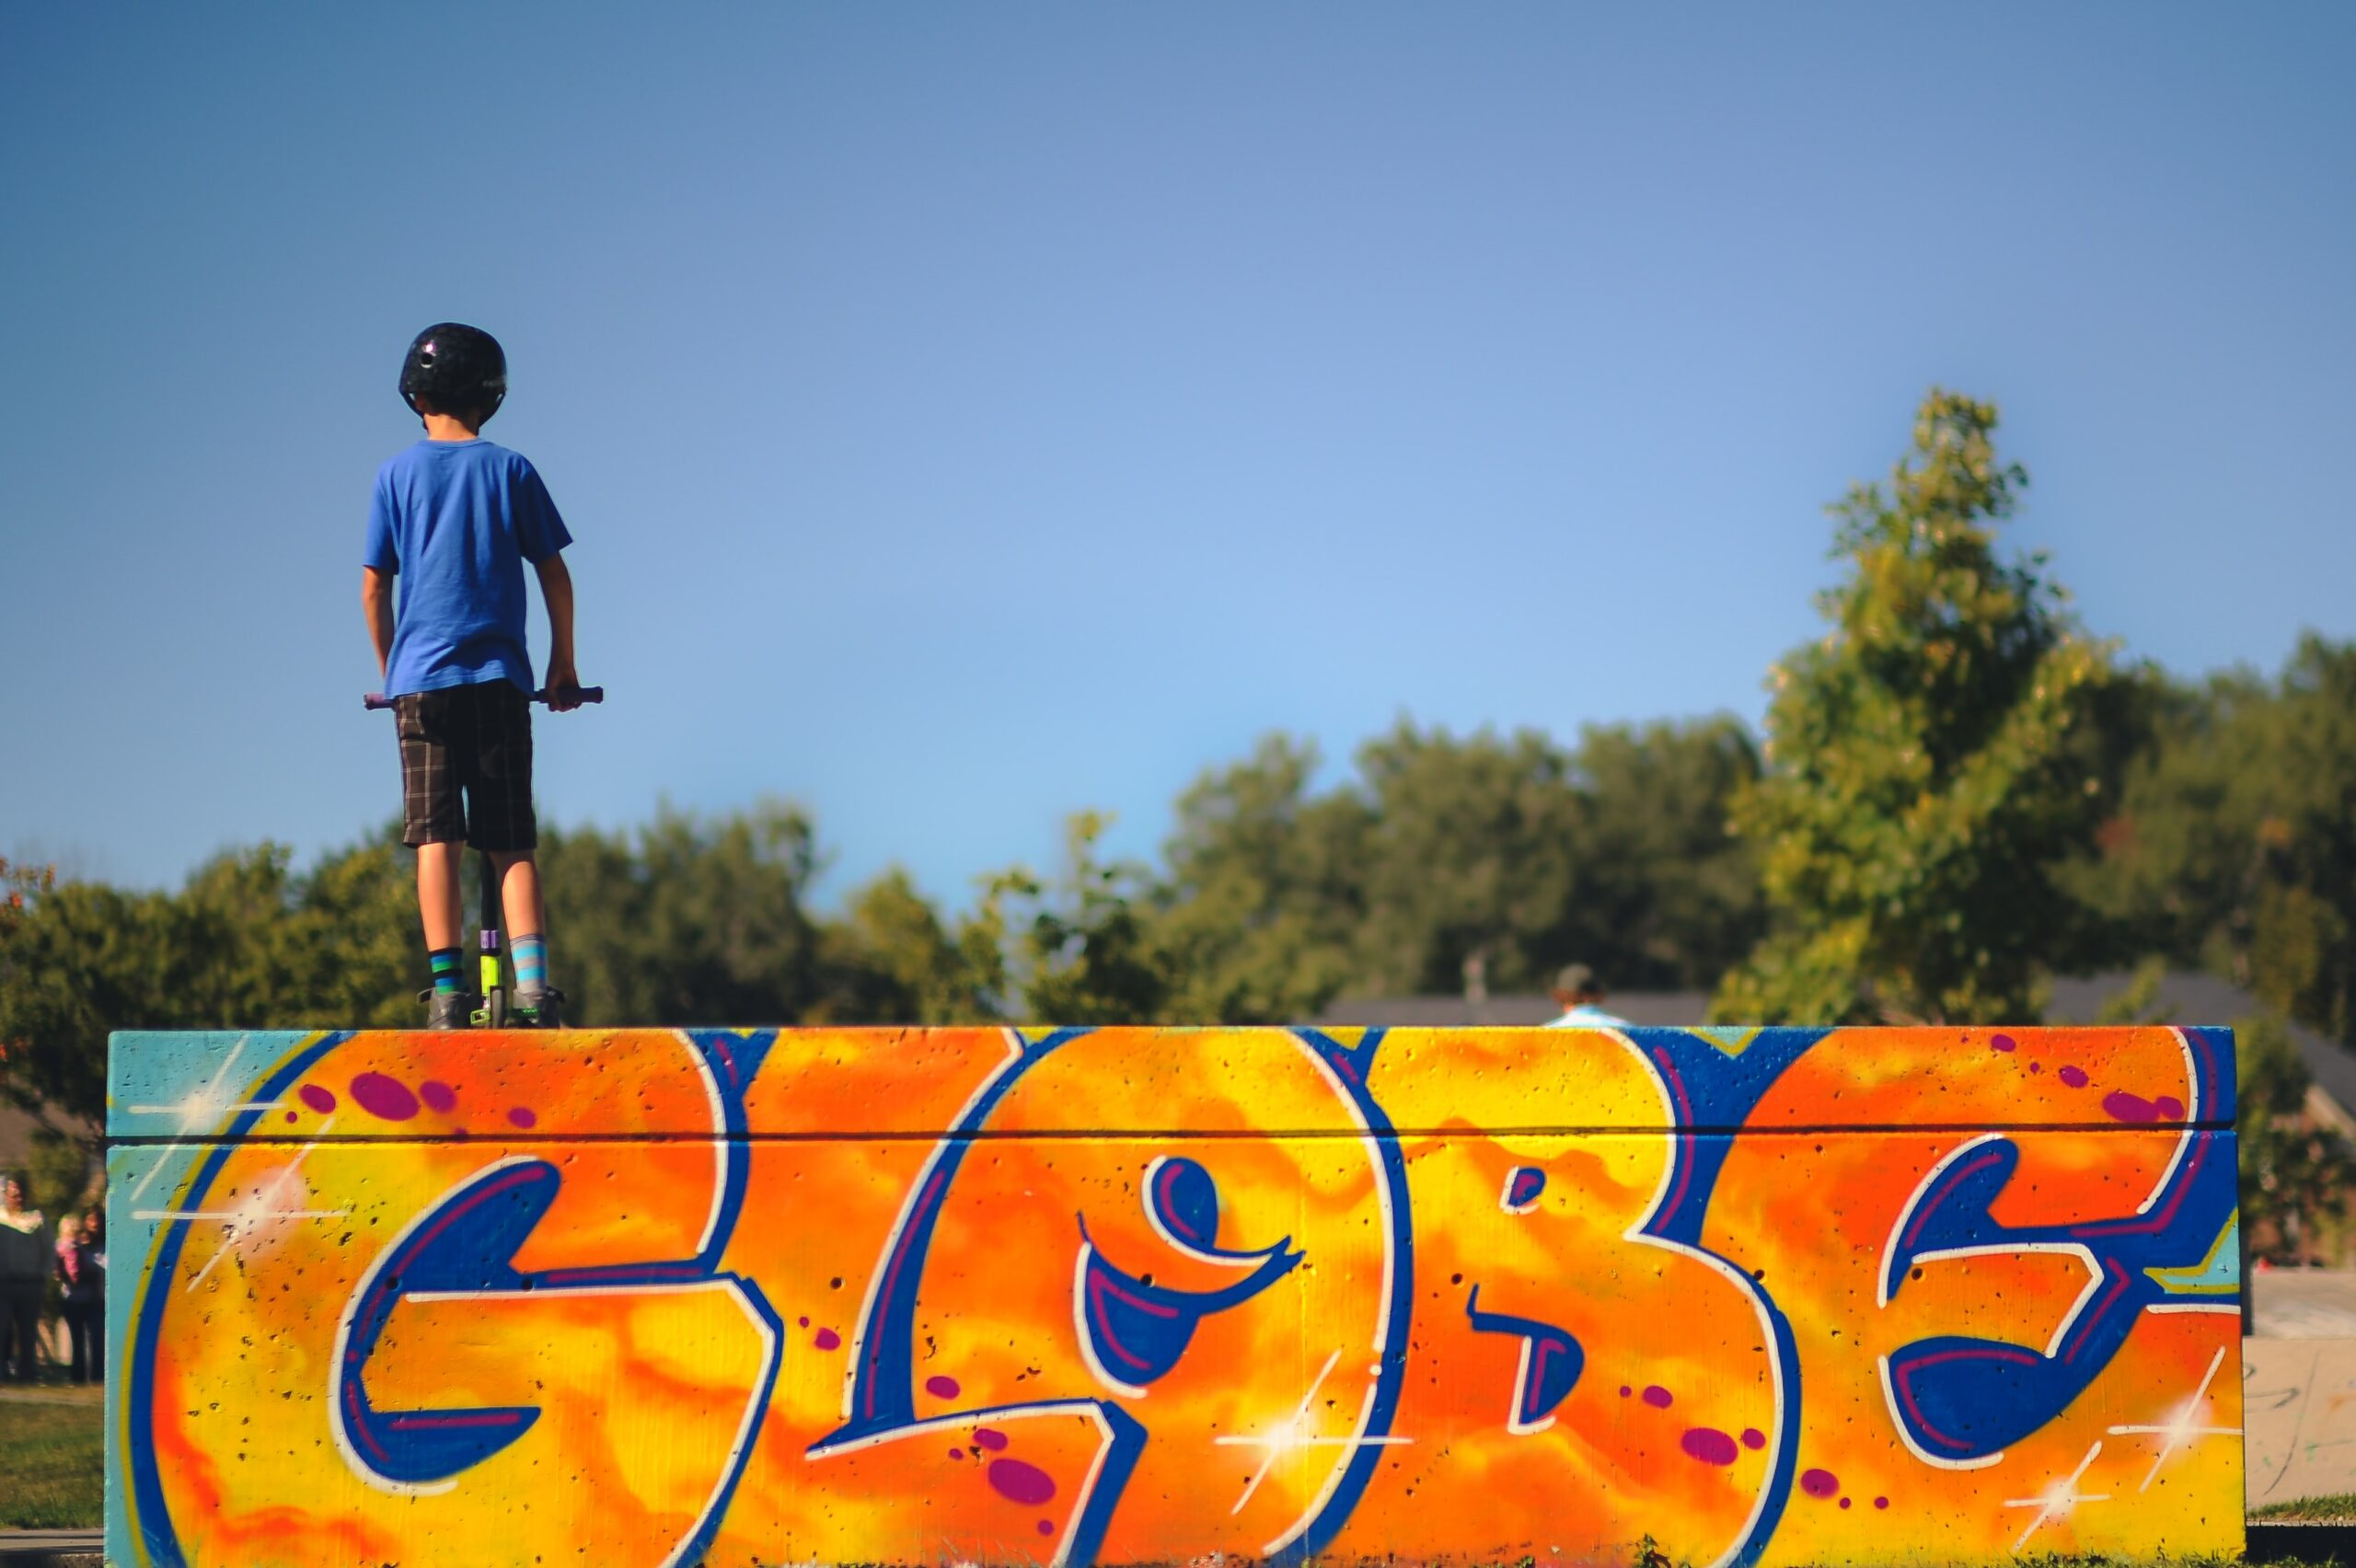 """Child with his back to the camera standing at the top of a skateboard ramp on a scooter, the ramp shows graffiti saying """"Globe"""""""